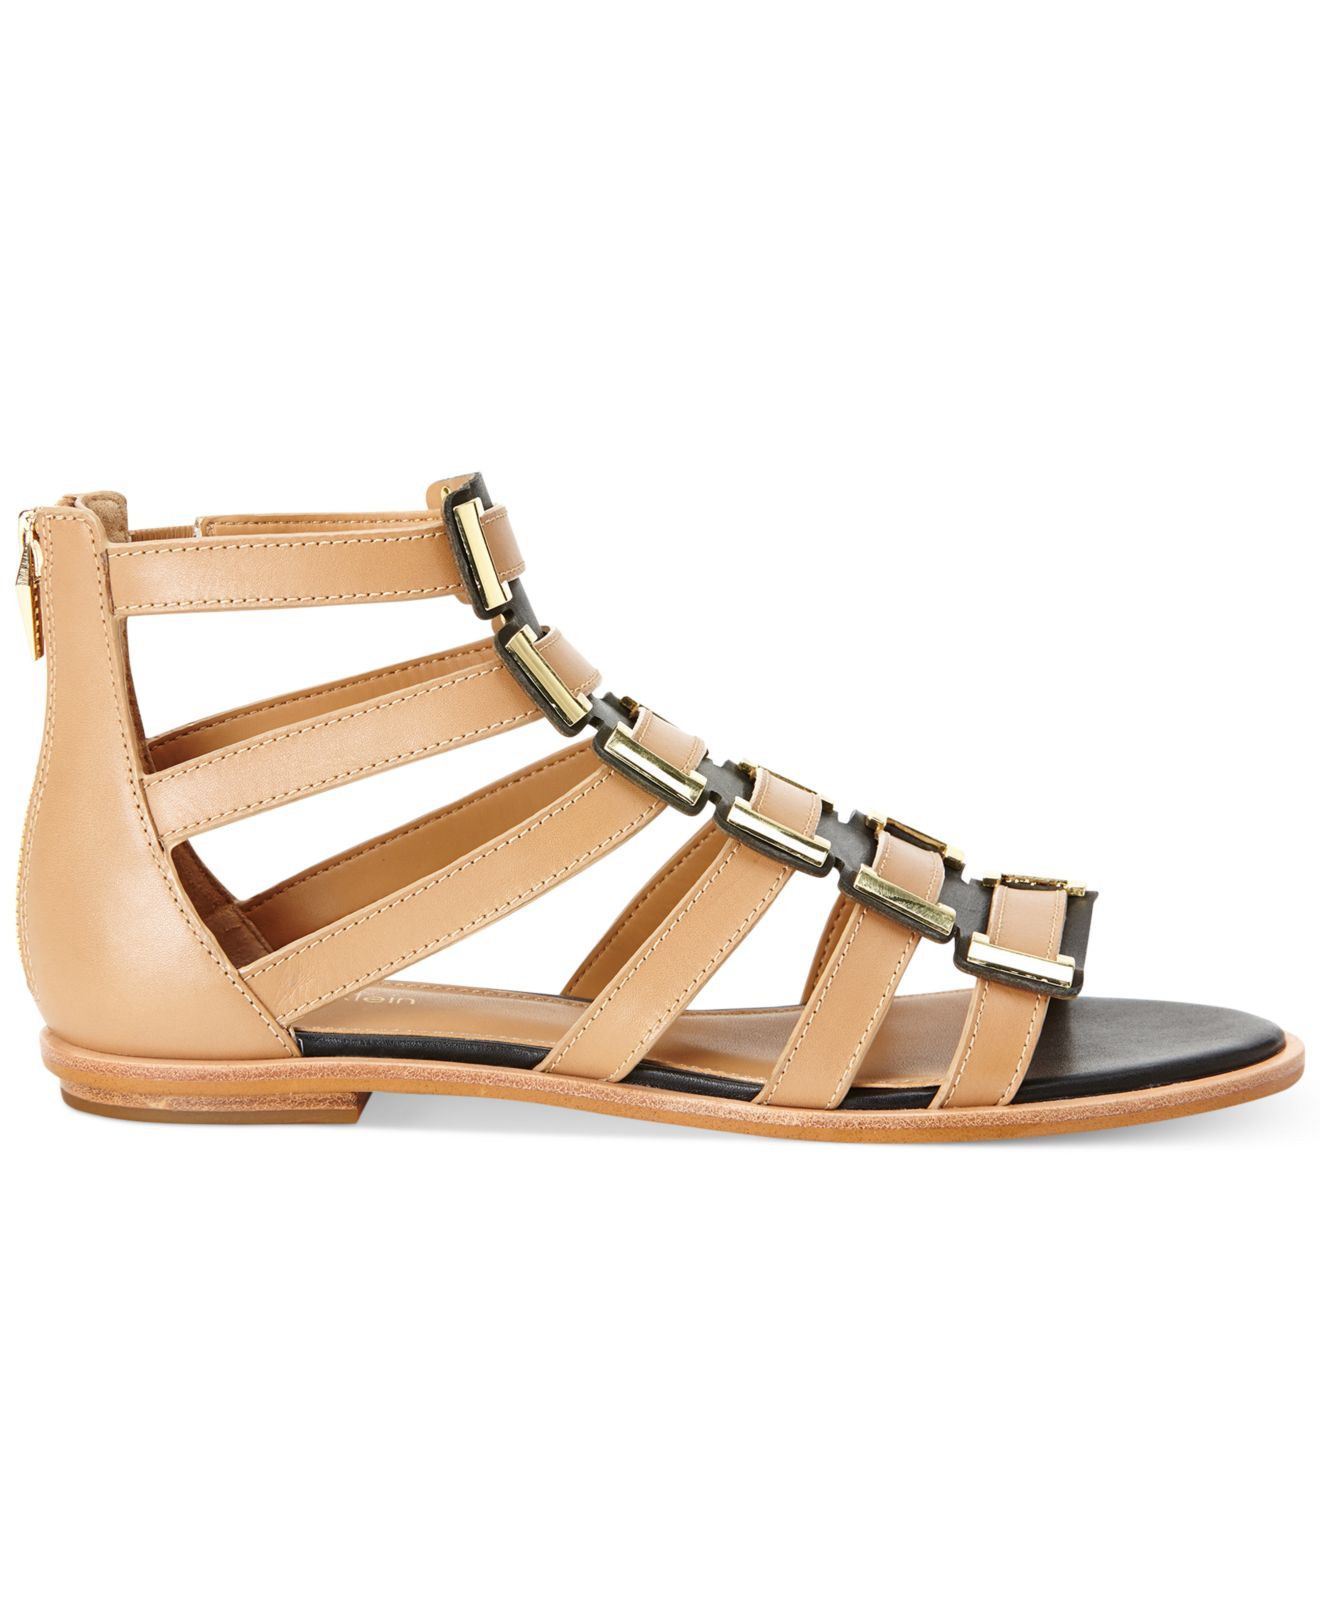 96d5080fbb3 Gallery. Previously sold at  Macy s · Women s Gladiator Sandals ...